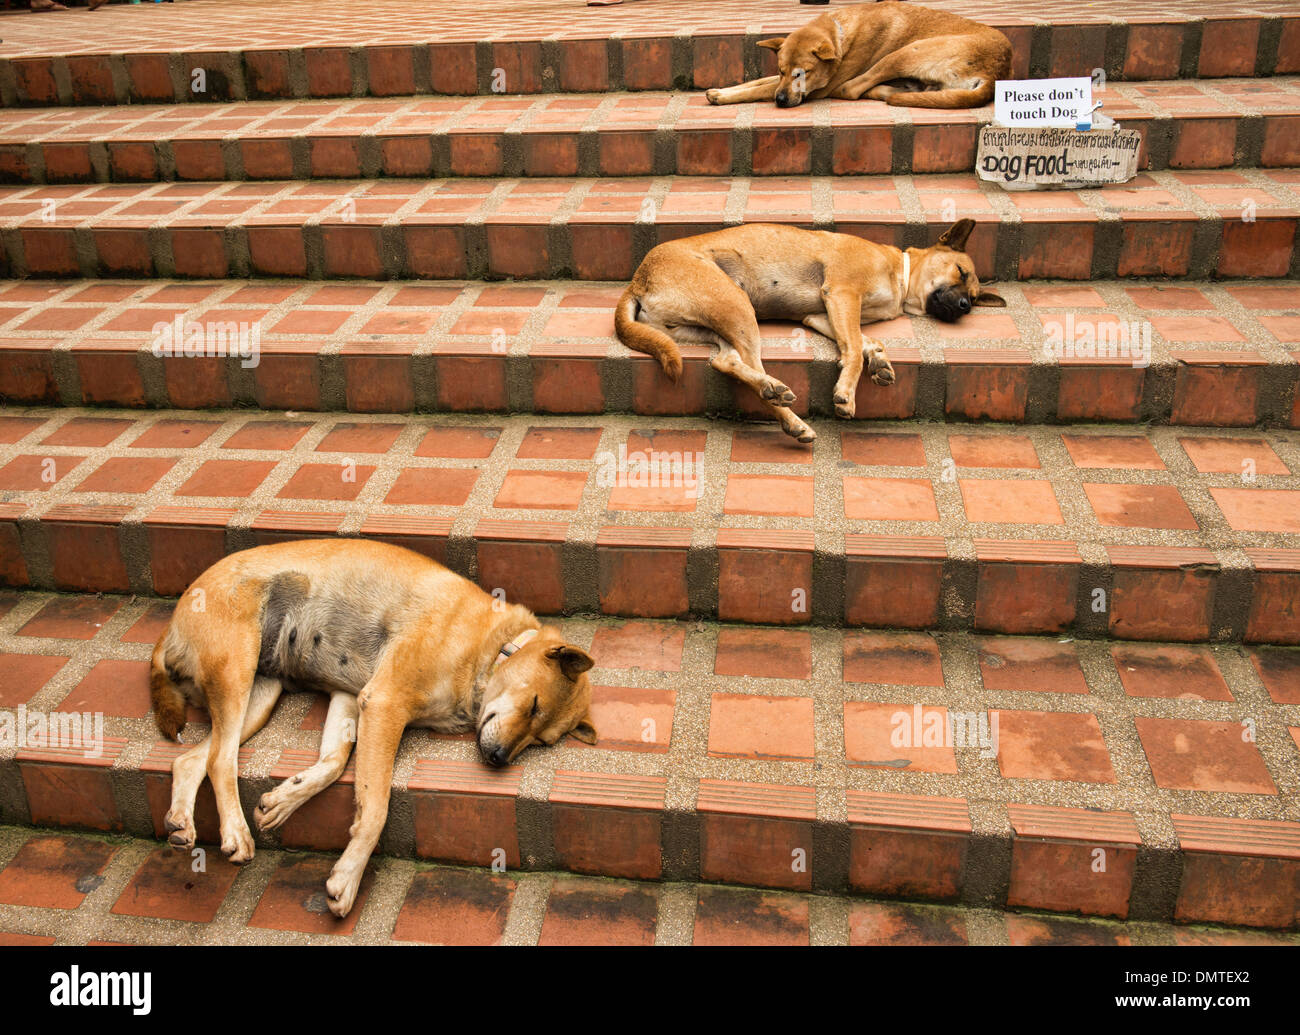 Let sleeping dogs lie, relaxing on the steps at Doi Suthep Temple, Chiang Mai, Thailand Stock Photo